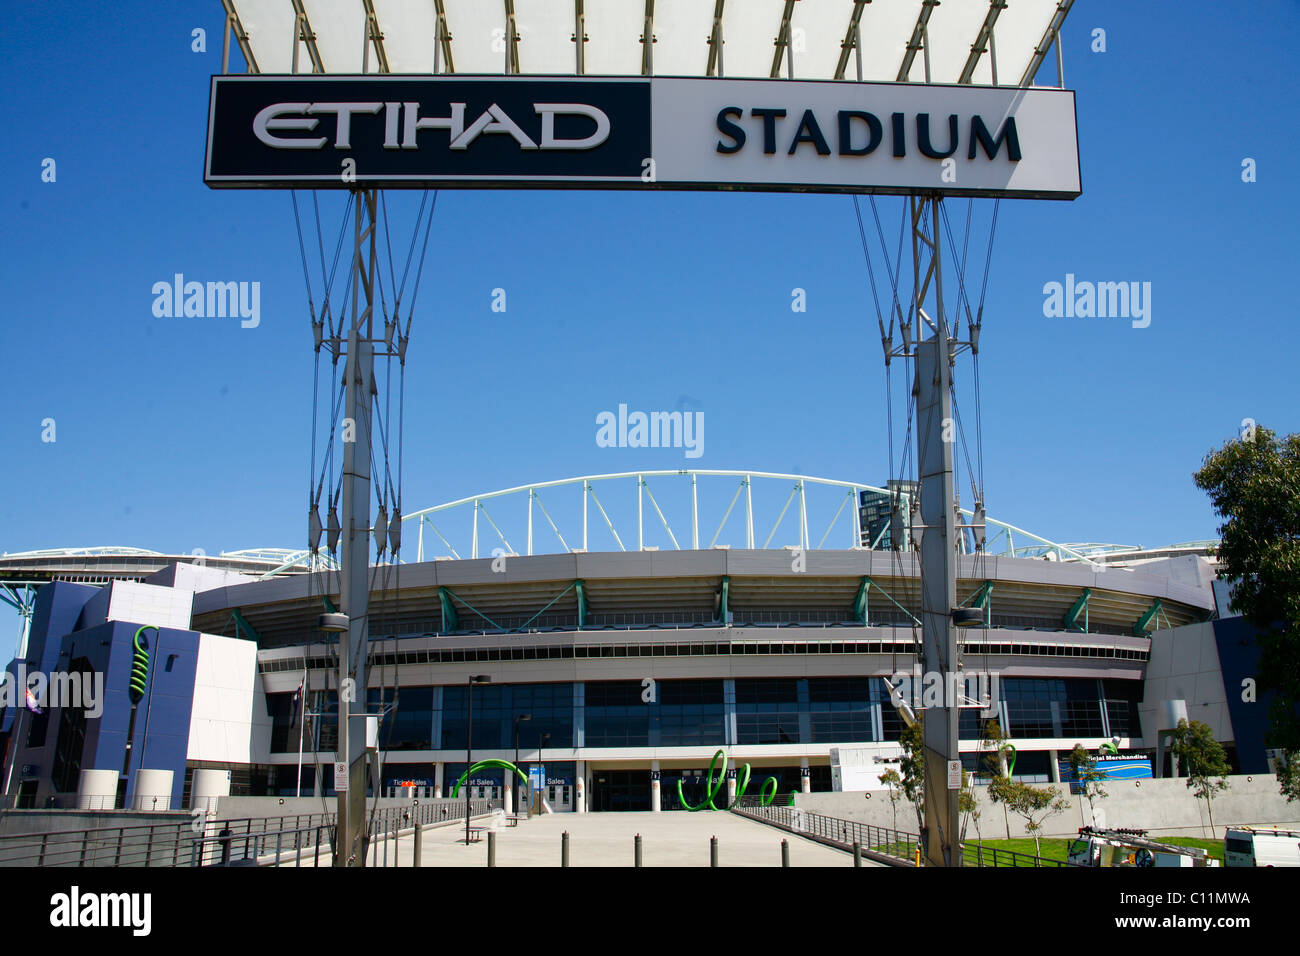 The Etihad Stadium in Melbourne, Victoria, Australia - Stock Image